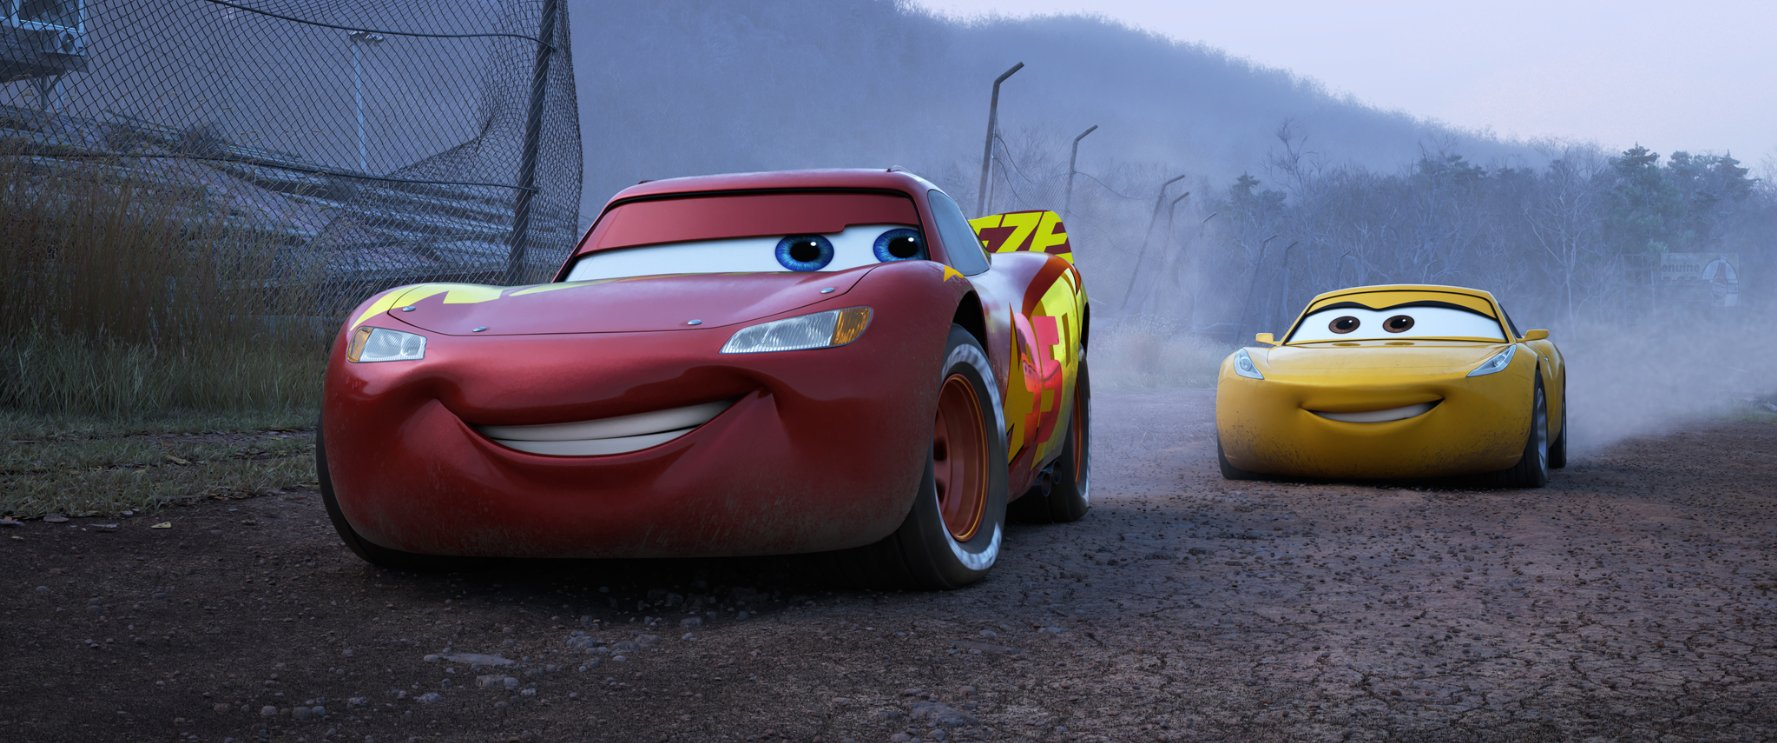 Cars 3 proves to be three times the charm with Lightning McQueen and the gang